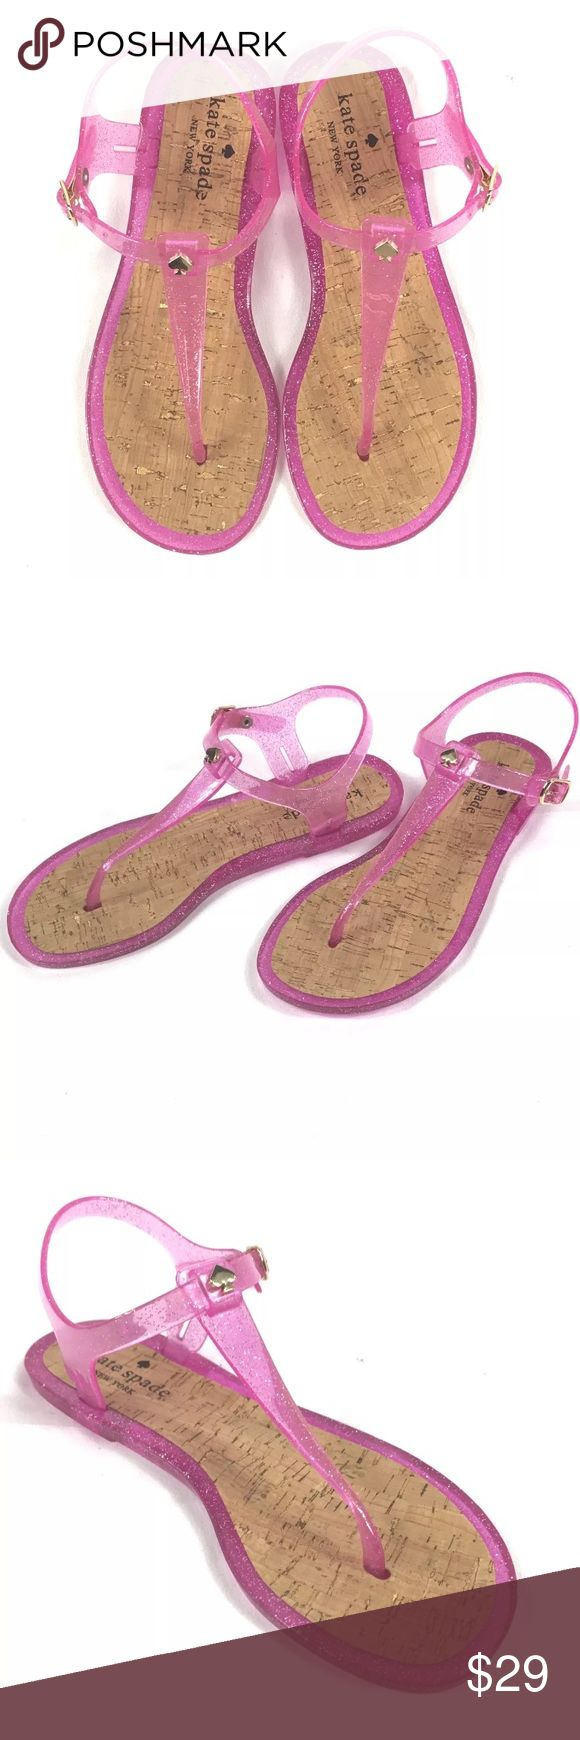 Kate Spade Yari Pink Glitter Jelly Sandals Kate Spade Yari Pink Glitter Jelly Sandals. Women's Size 6. Worn one time, logo is slight rubbed off on right sandal. Rubber . Rubber sole. Flat jelly sandal featuring T-strap thong with spade logo at cross-strap. Cork-covered footbed. Adjustable buckle at ankle. kate spade Shoes Sandals